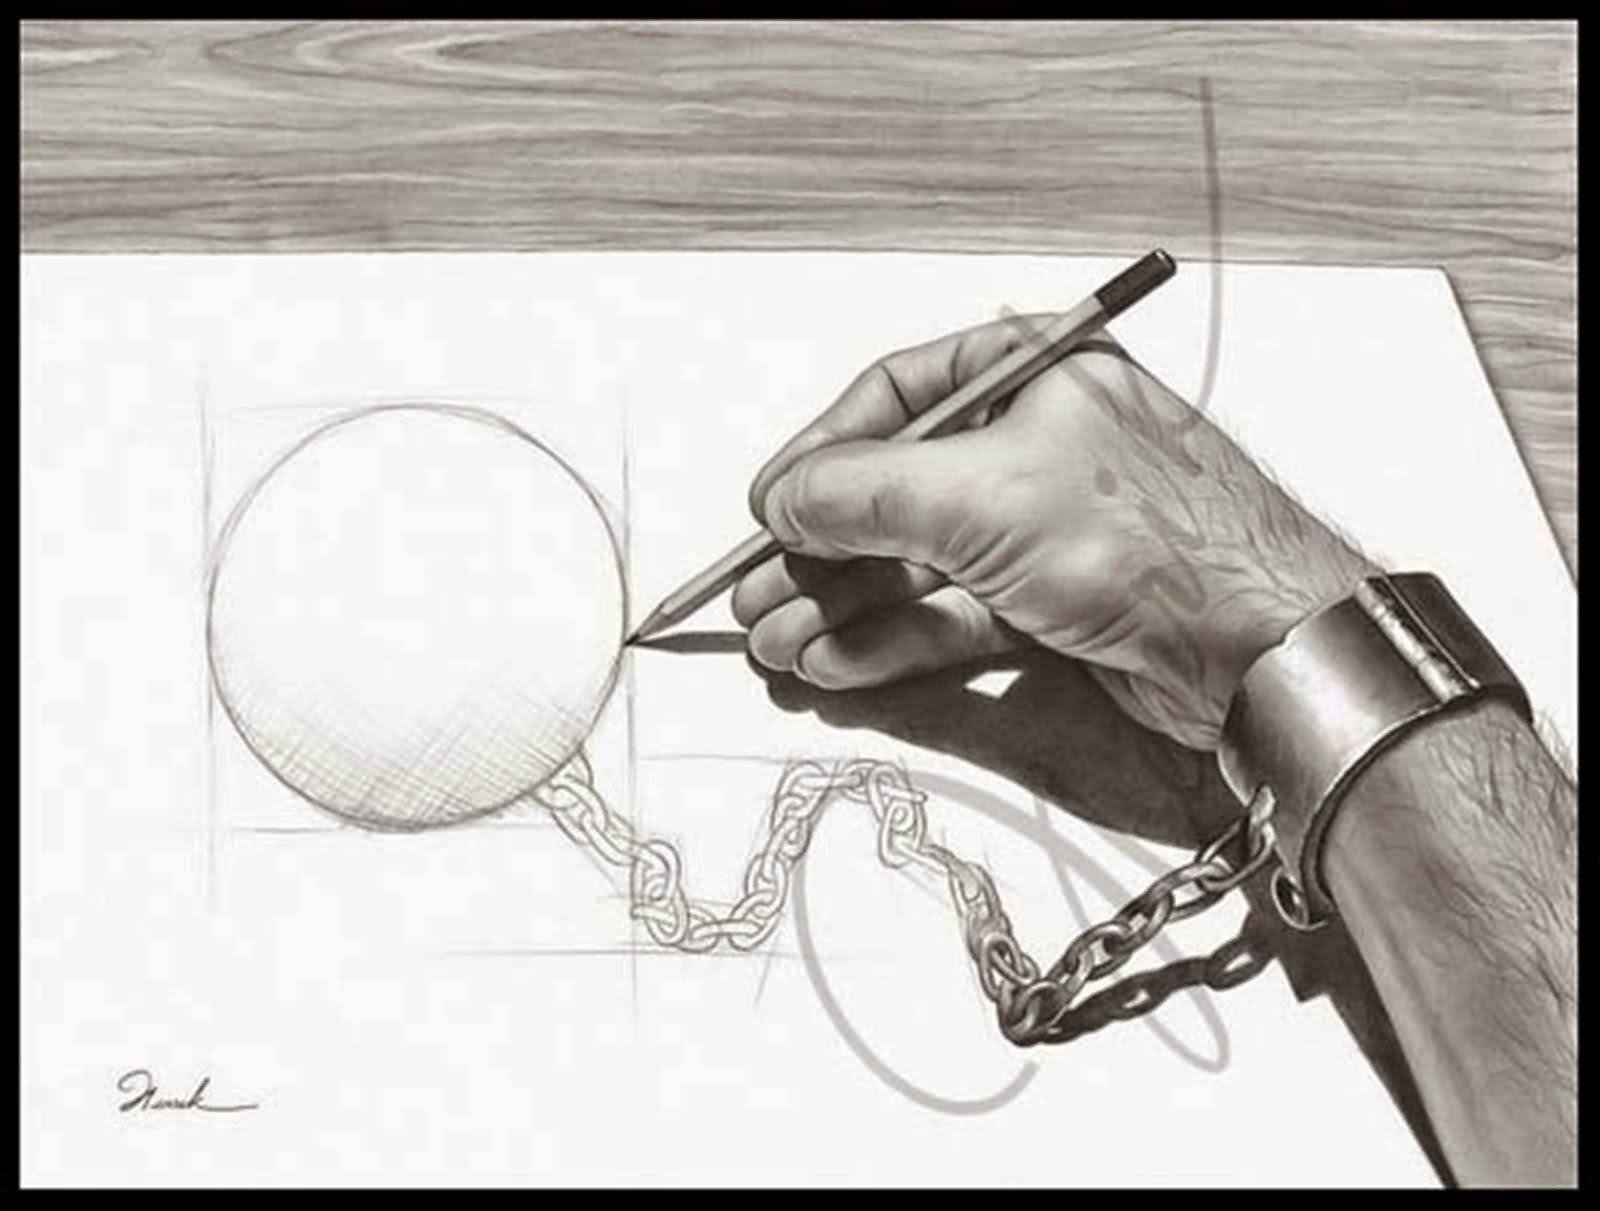 1600x1211 Funny Chain Ball Drawing Picture For Facebook